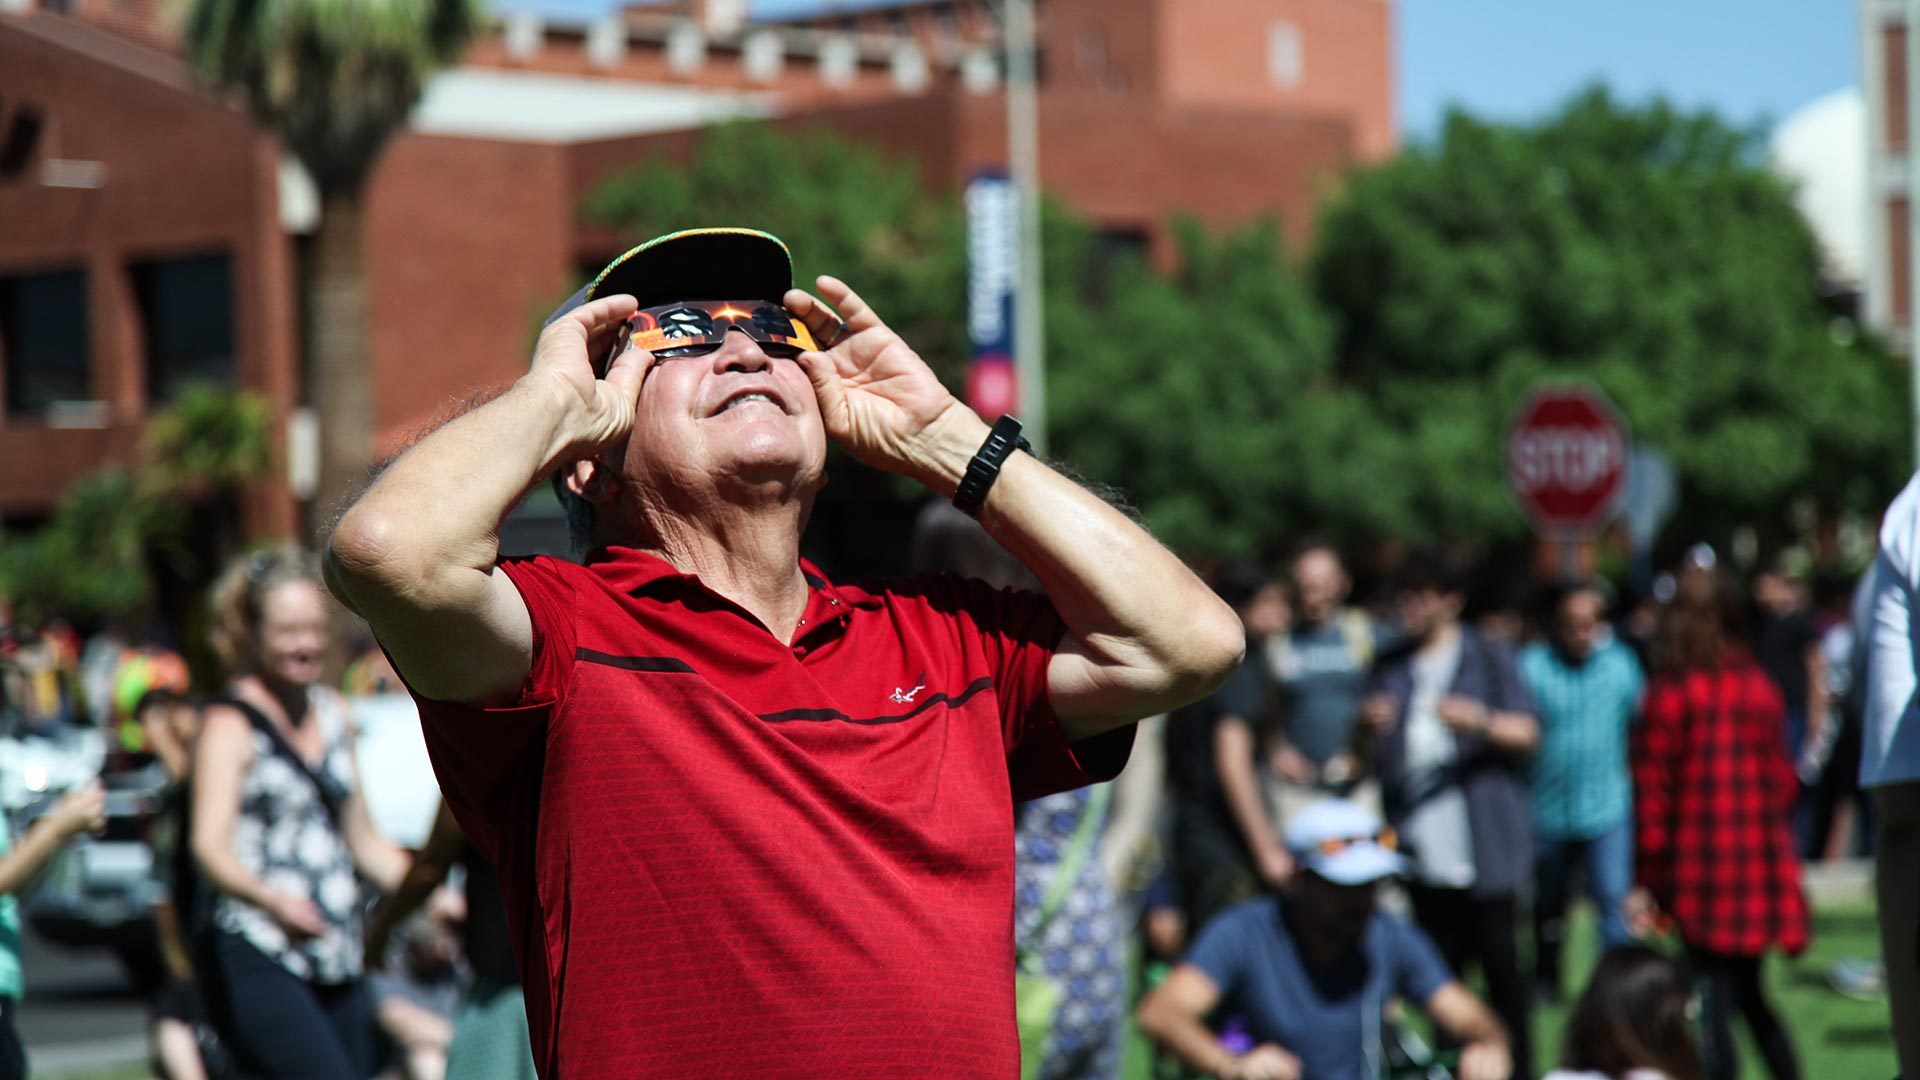 Tucsonan Rafael Guillen views the solar eclipse through glasses he purchased at the UA's Flandreau Science Center and Planetarium.